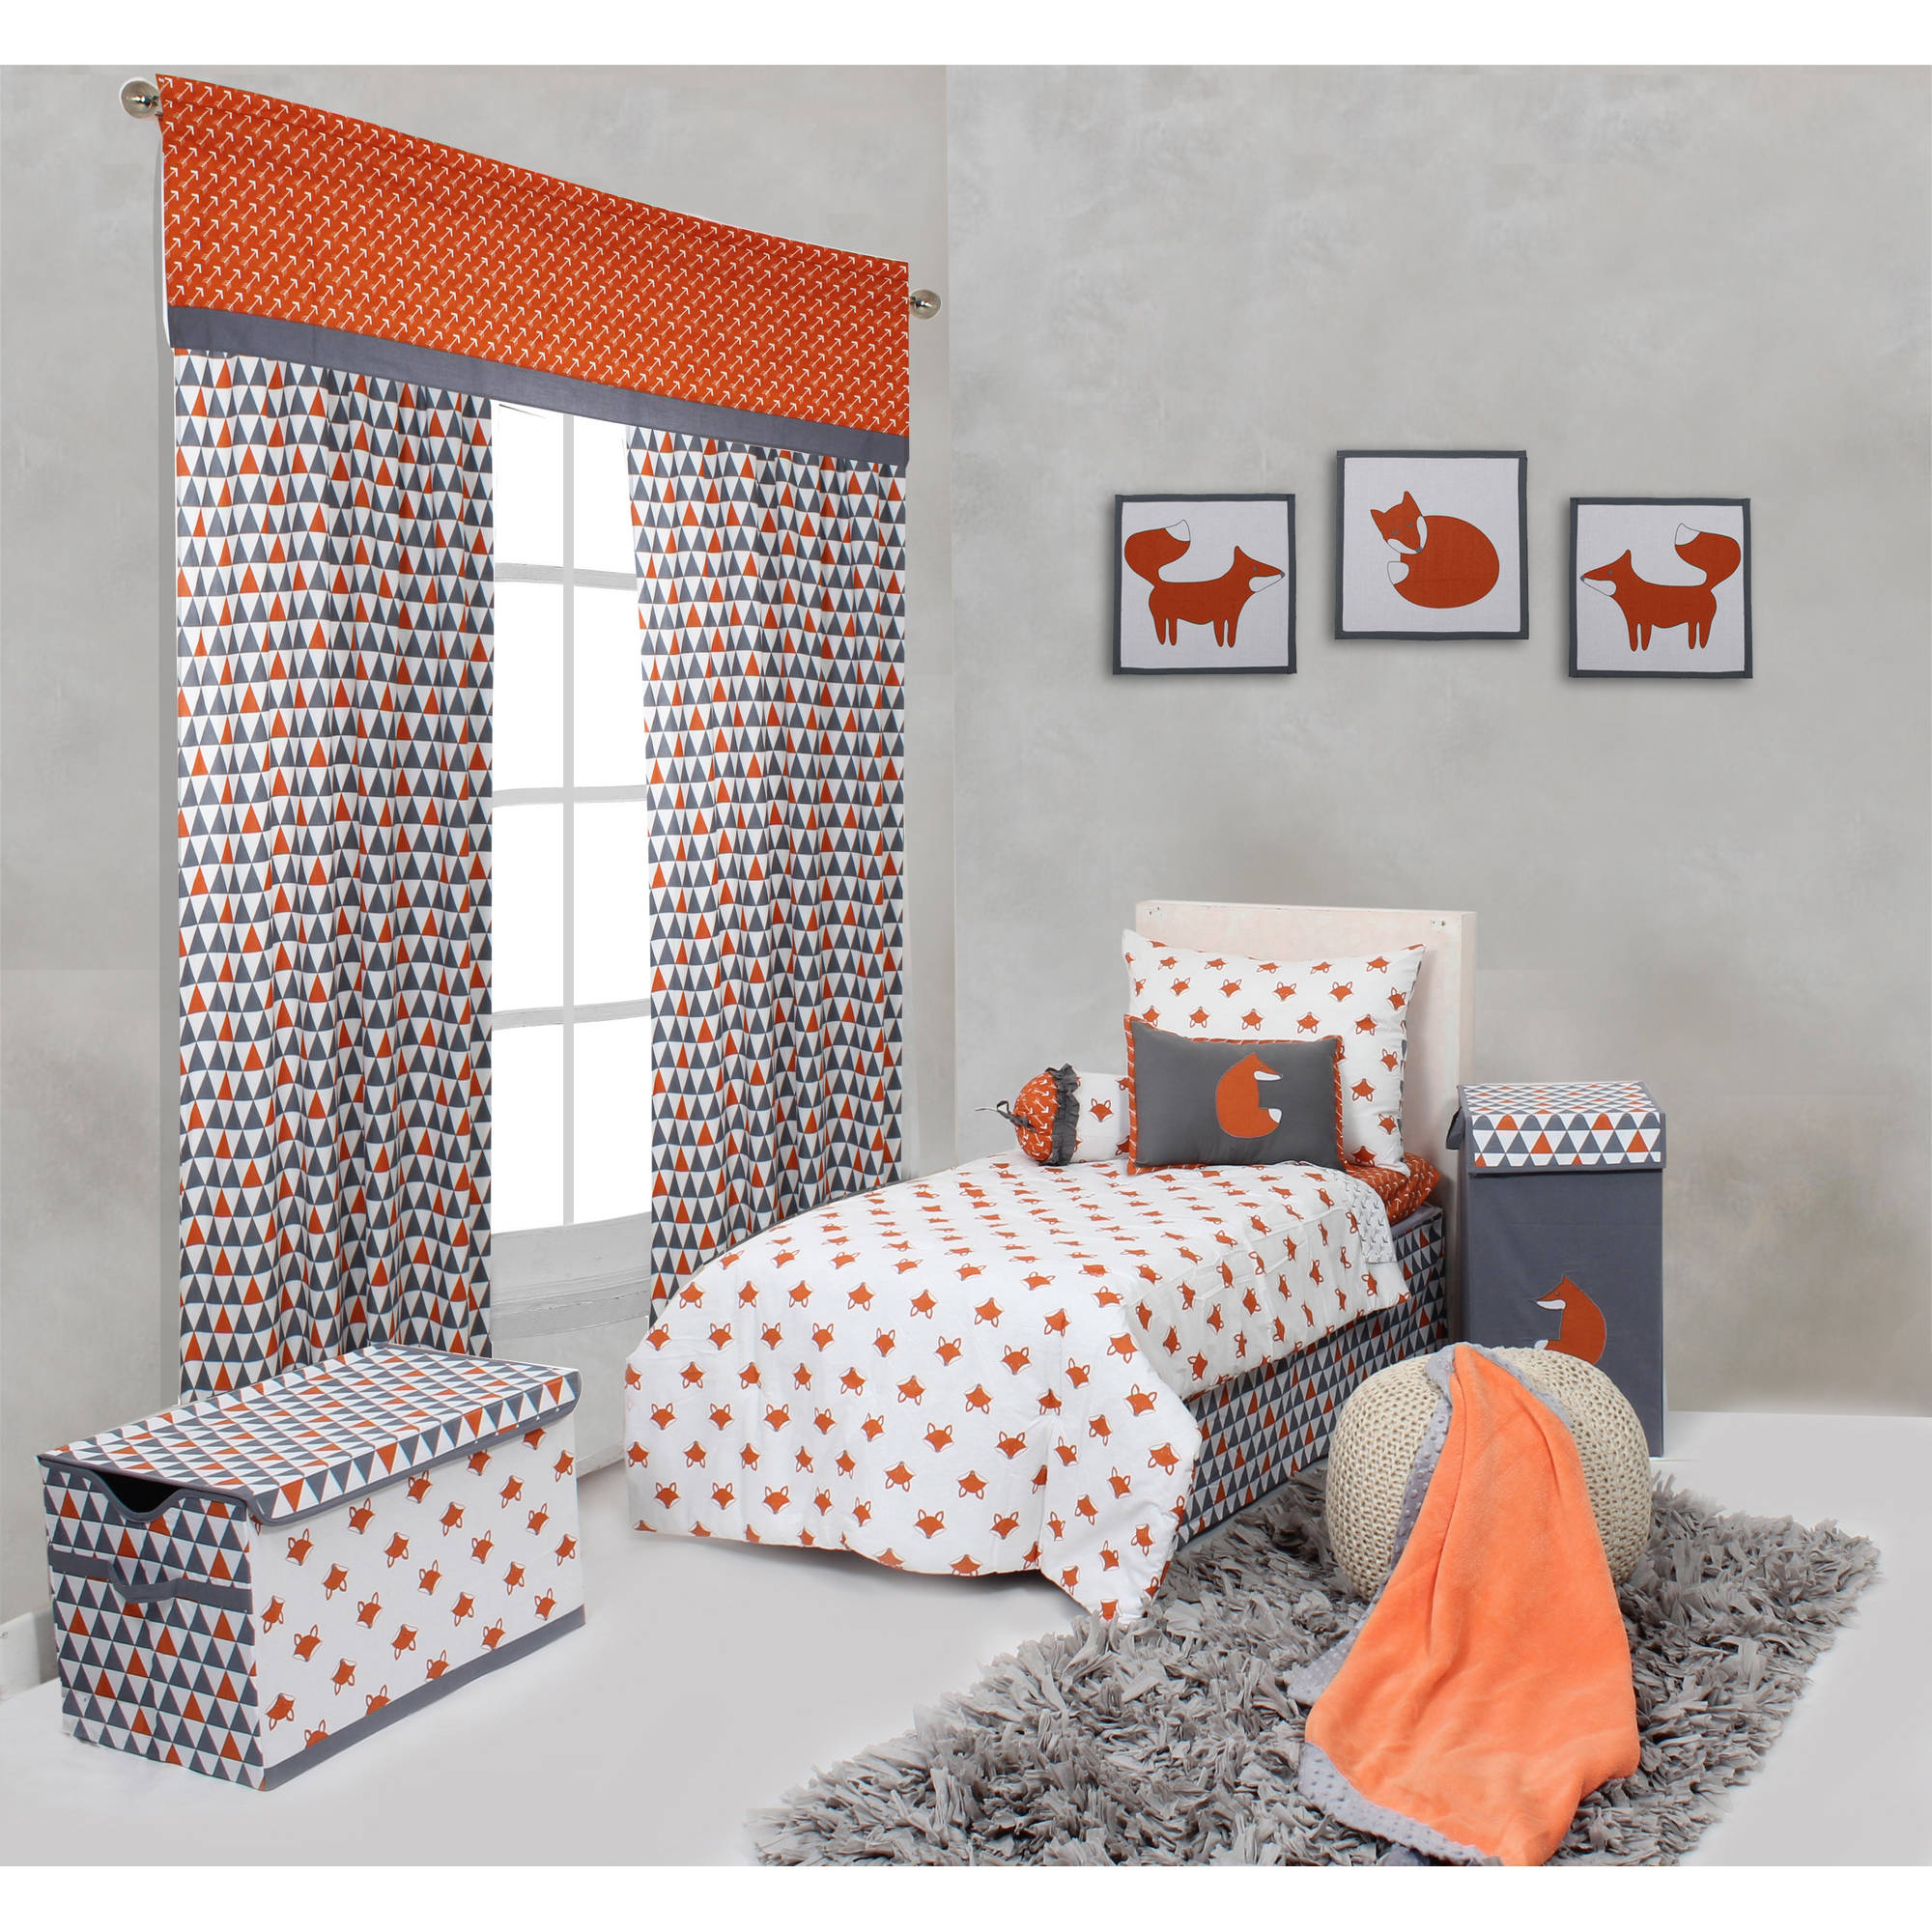 Bacati Playful Foxes Orange Gray 4-Piece Toddler Bedding Set 100% Cotton percale fabrics by Bacati